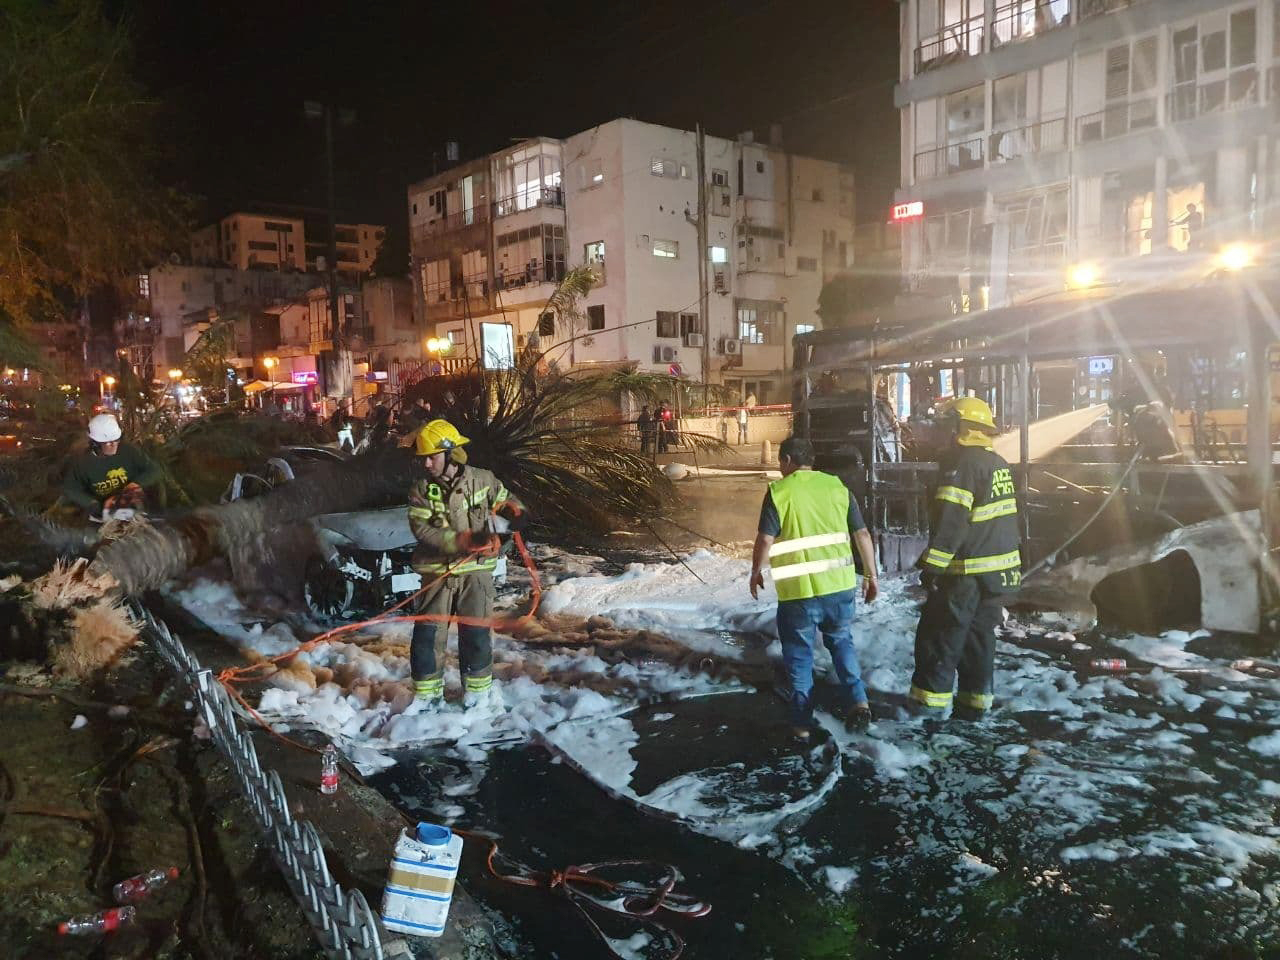 Damage caused by a rocket attack from Gaza on the city of Holon. Photo: Assaf Kamer